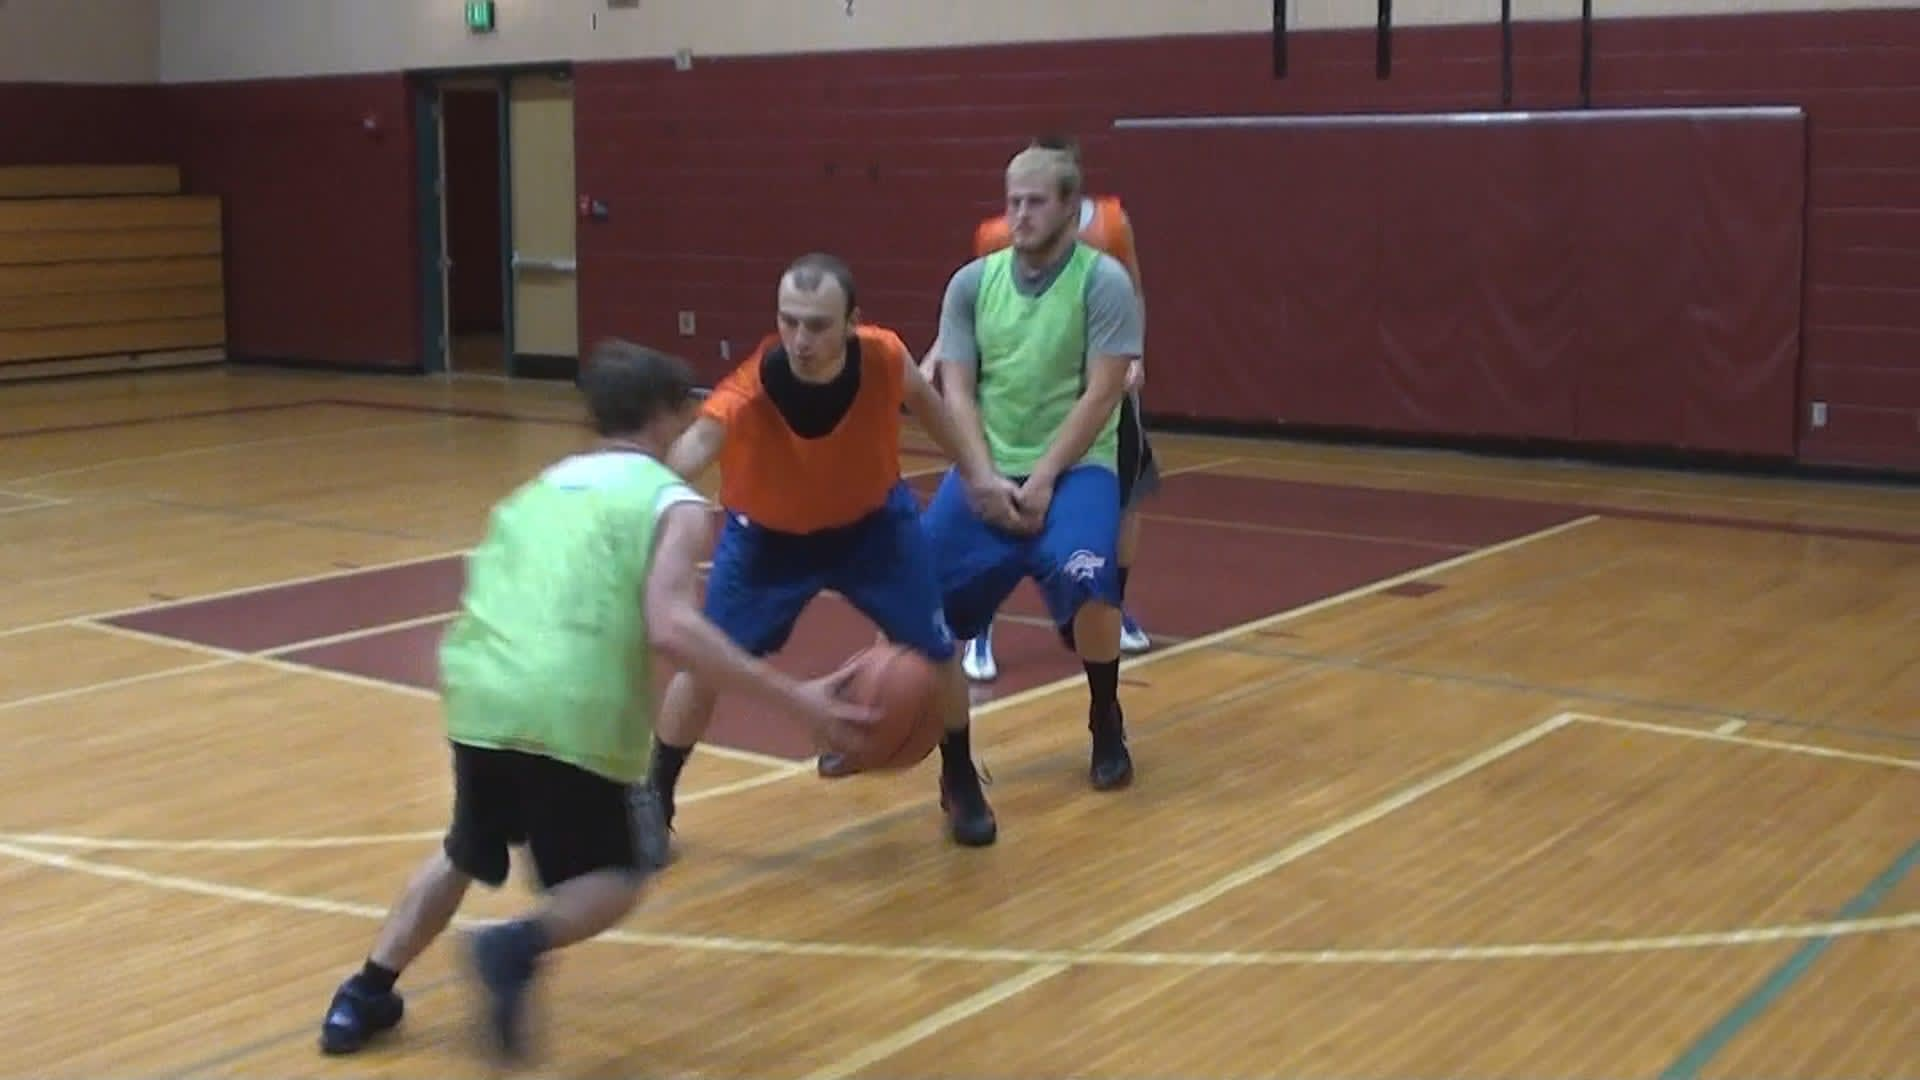 The pick and roll is one of the most simple, yet deadliest plays in basketball and lacrosse.